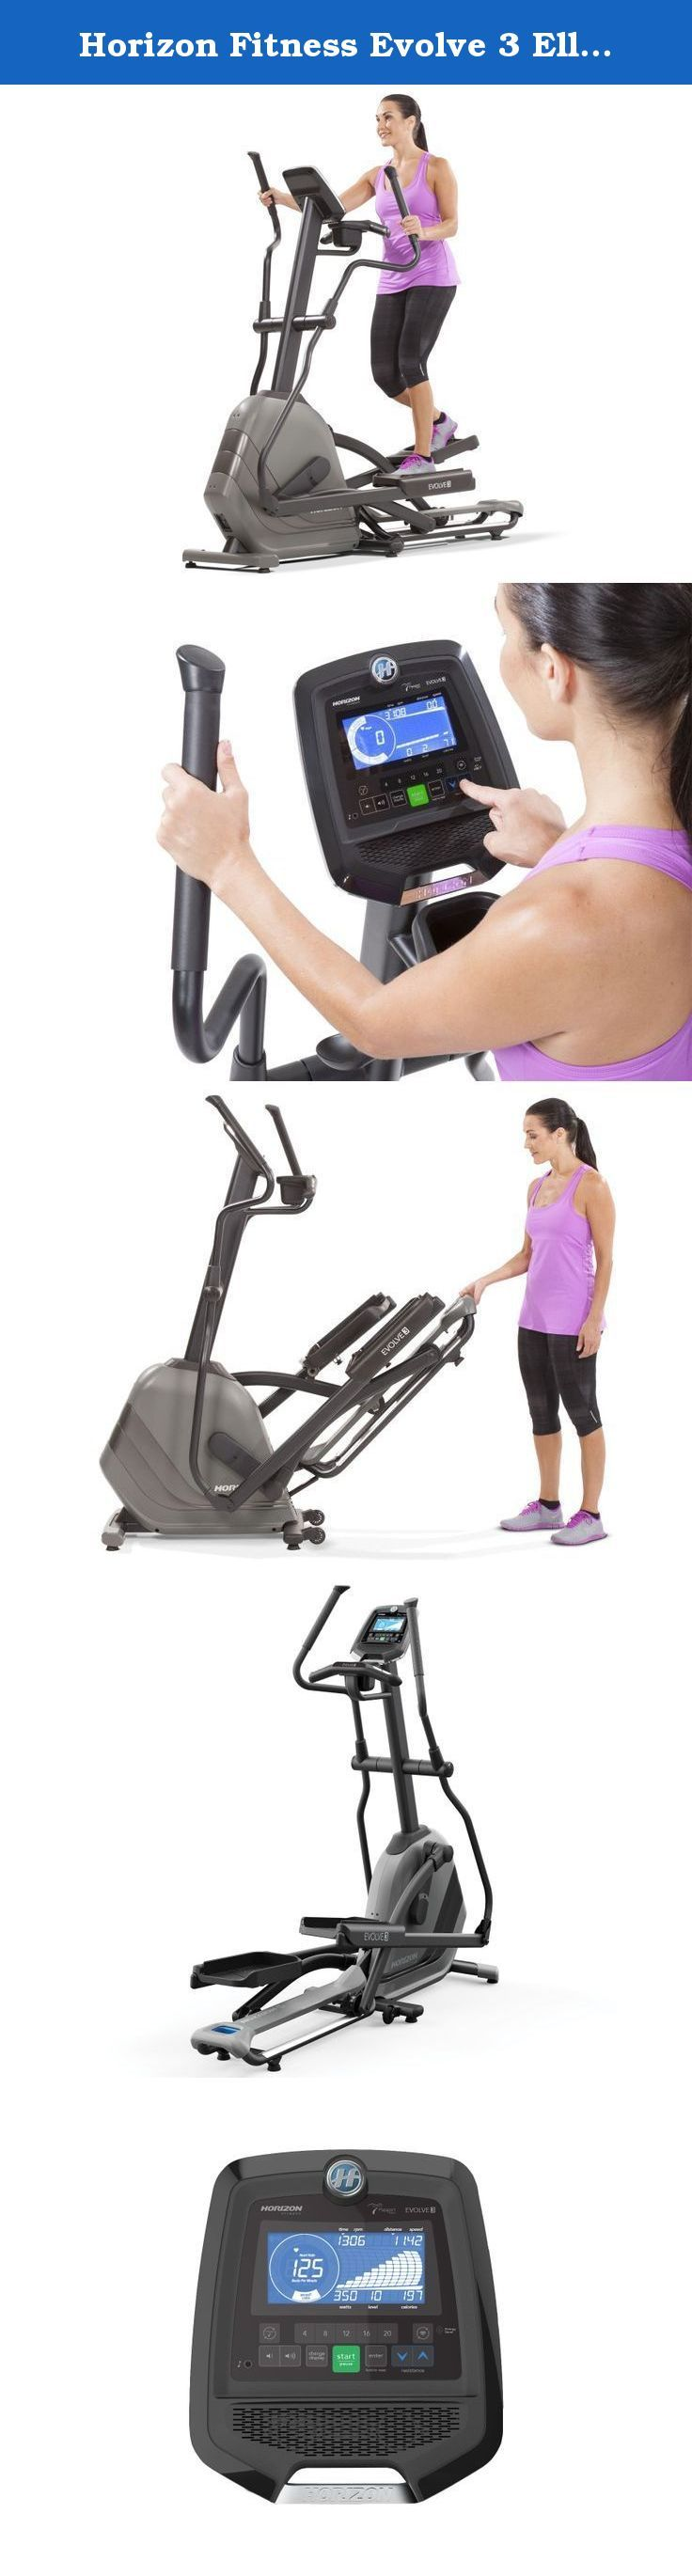 Horizon Fitness Evolve 3 Elliptical Trainer. Simple assembly, one-step folding, a compact footprint and the most comfortable feel make the Horizon Fitness Evolve 3 one of the best moves you can make to improve your fitness.